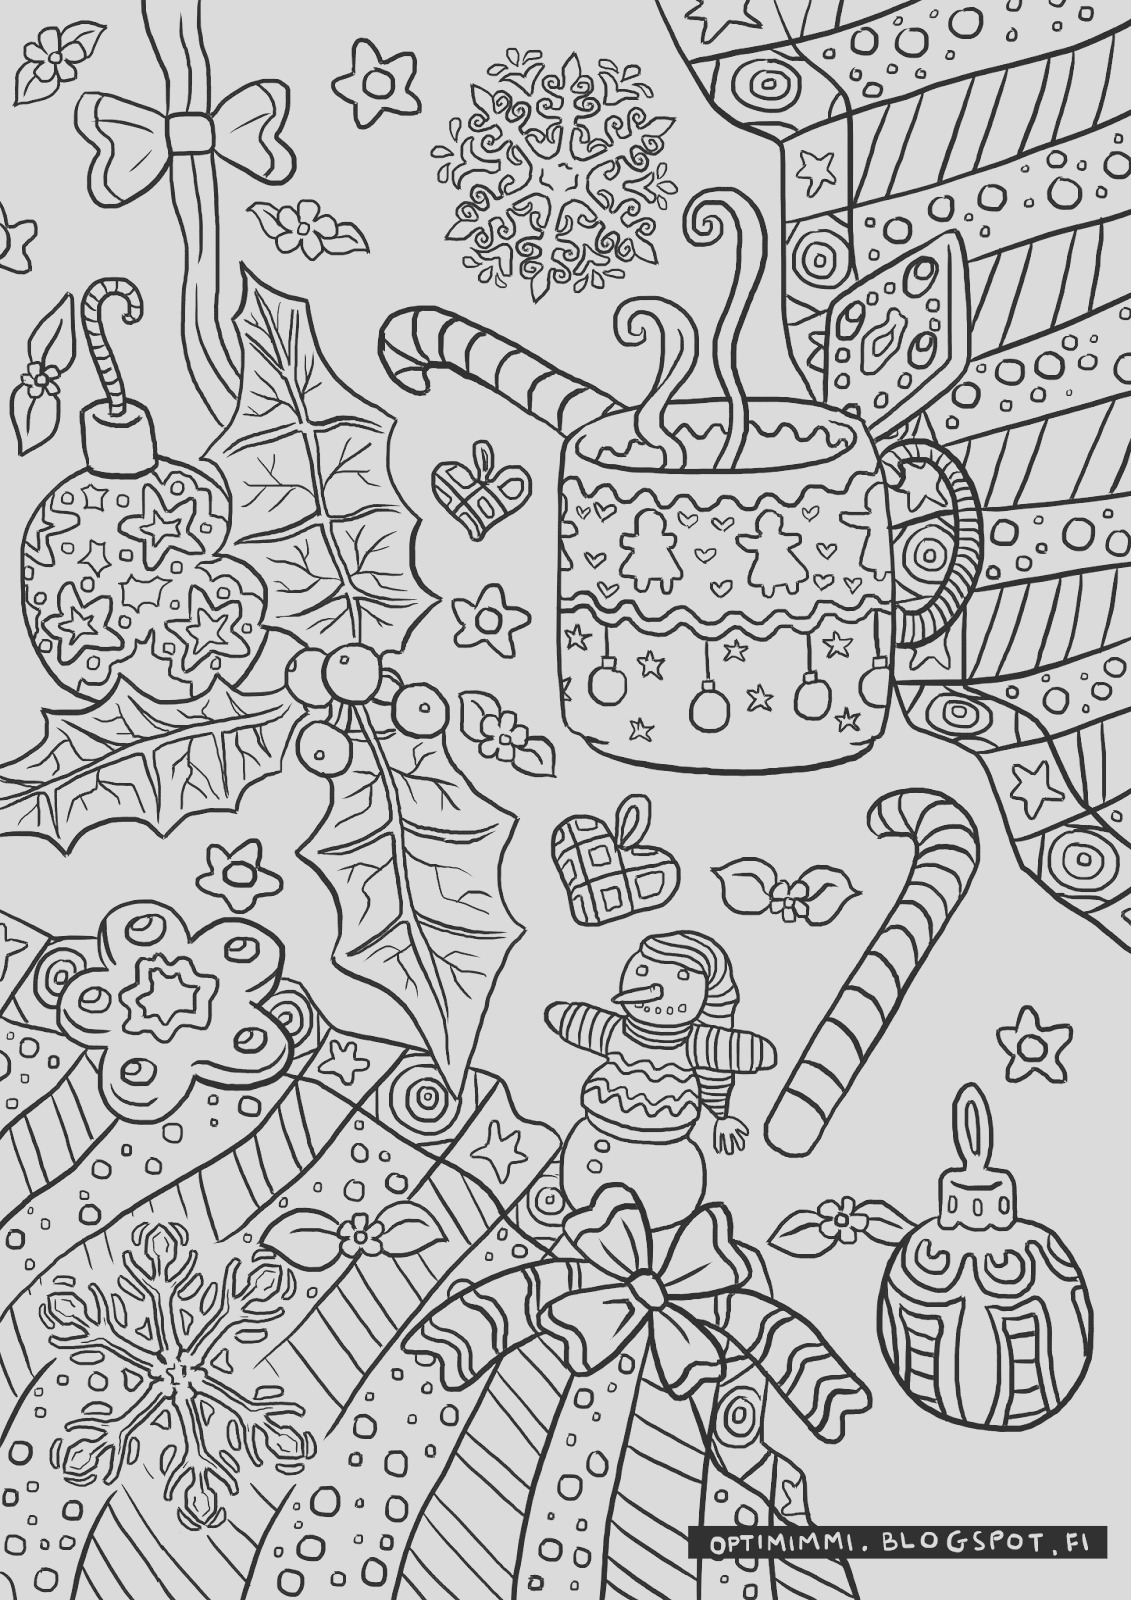 2016 coloring pages 2016 varityskuvat